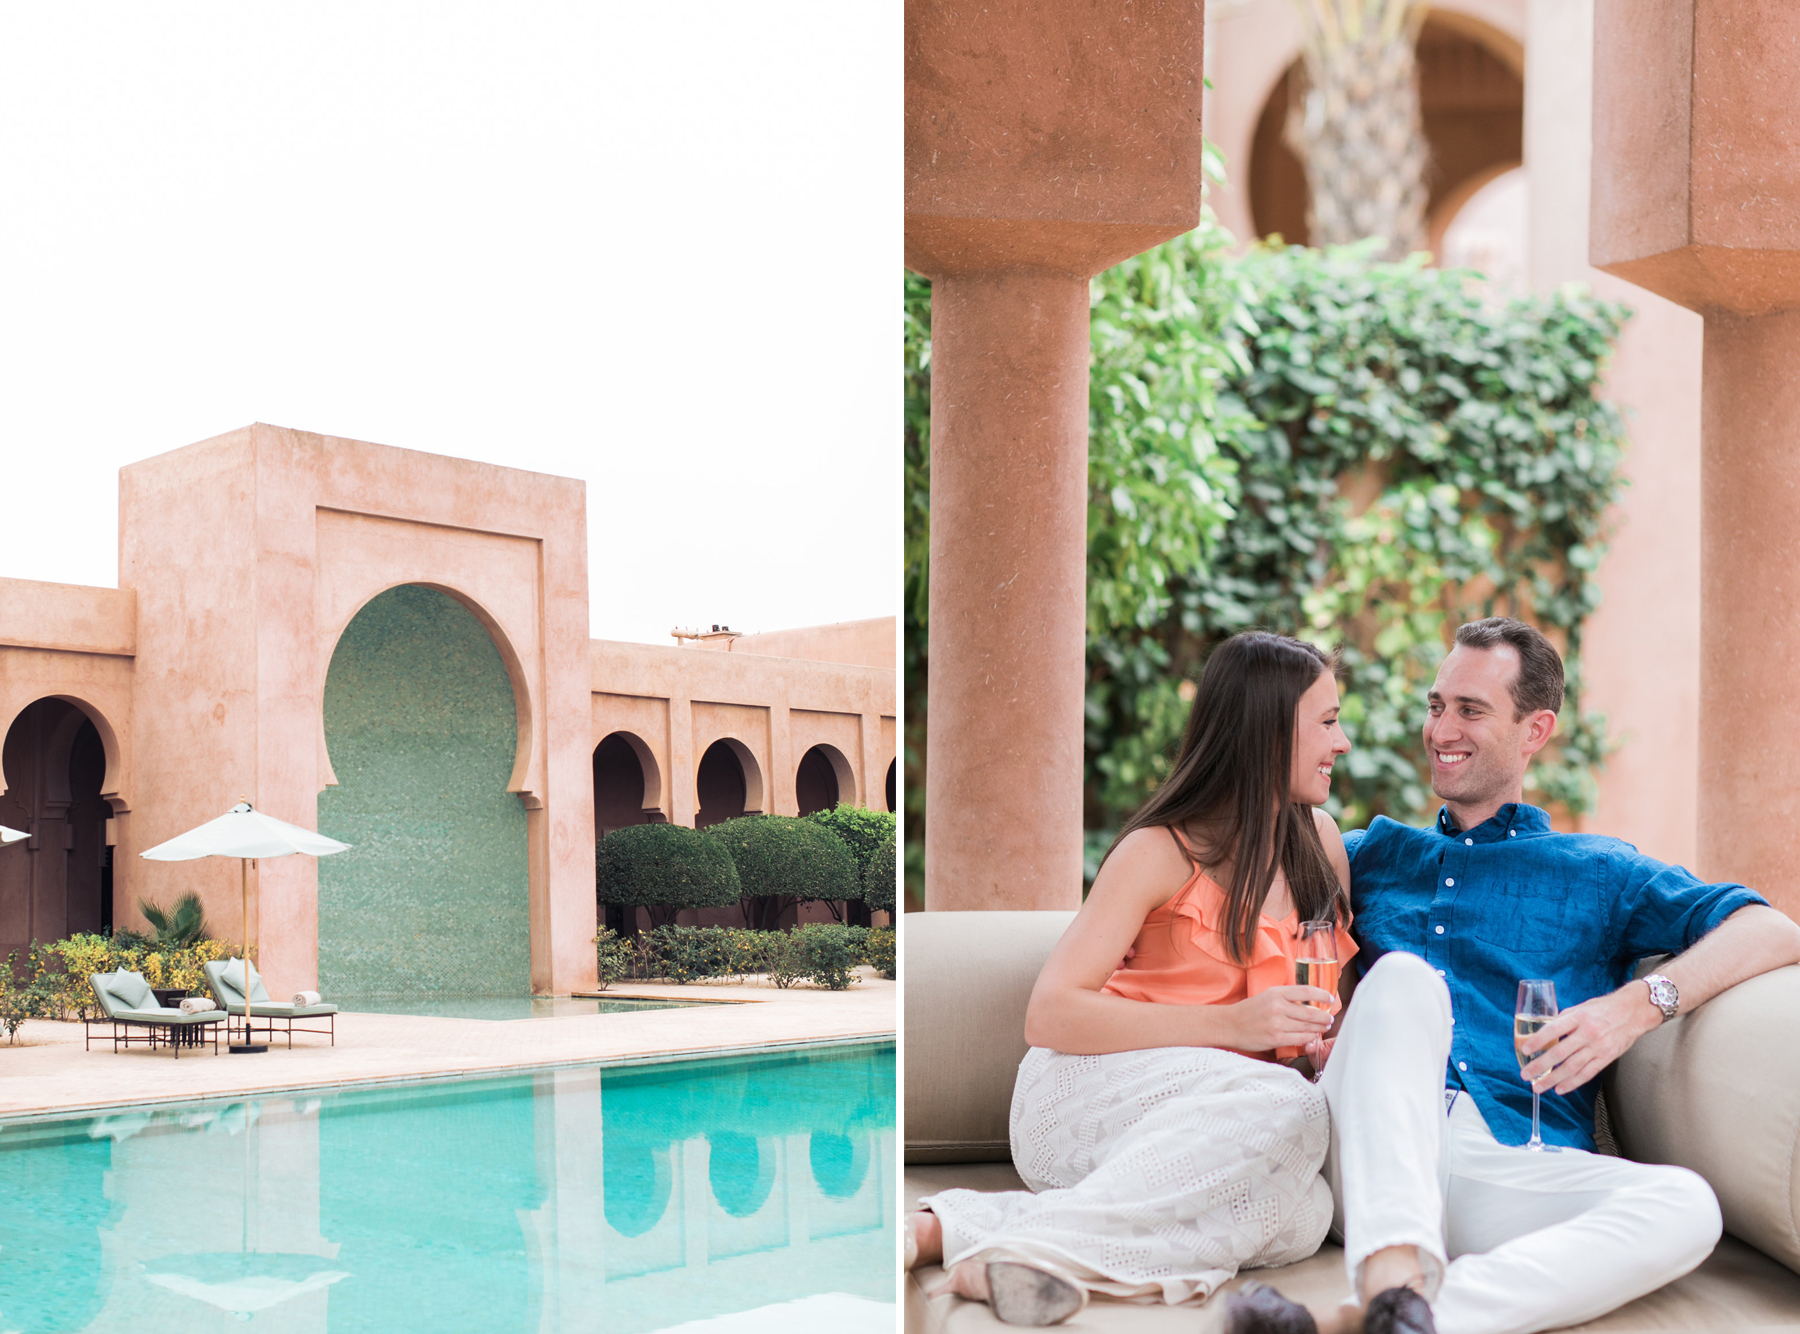 mariarao_engagement_marrakech-2-81web.JPG